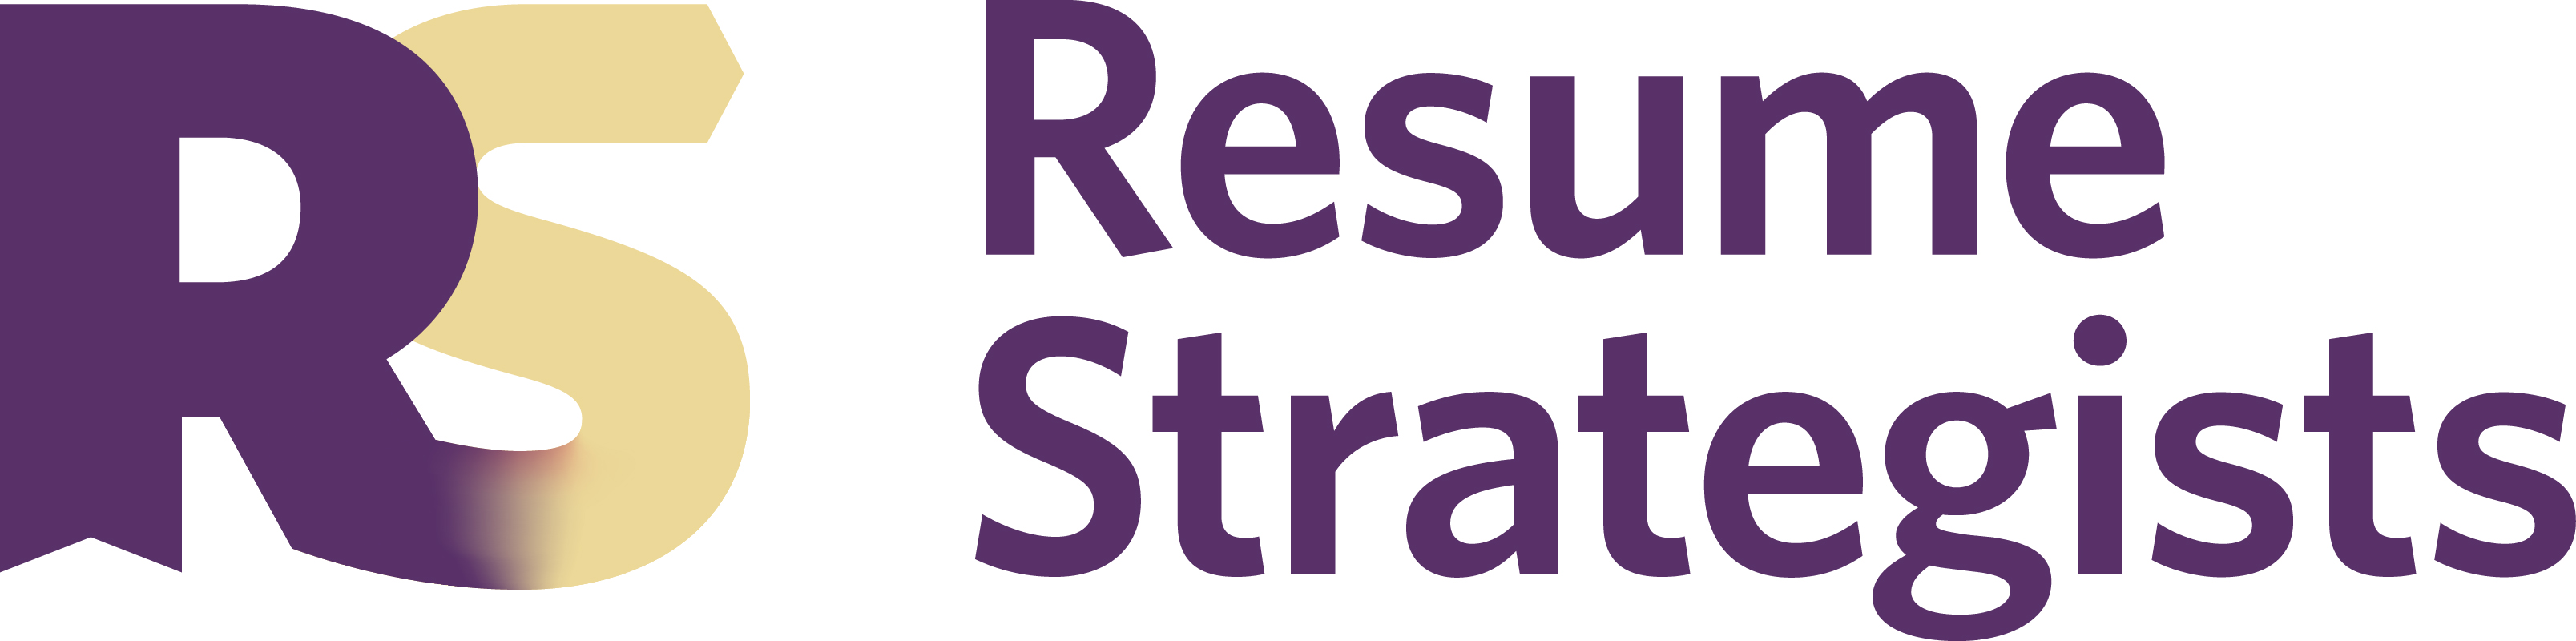 resume strategists career consulting and personal branding experts